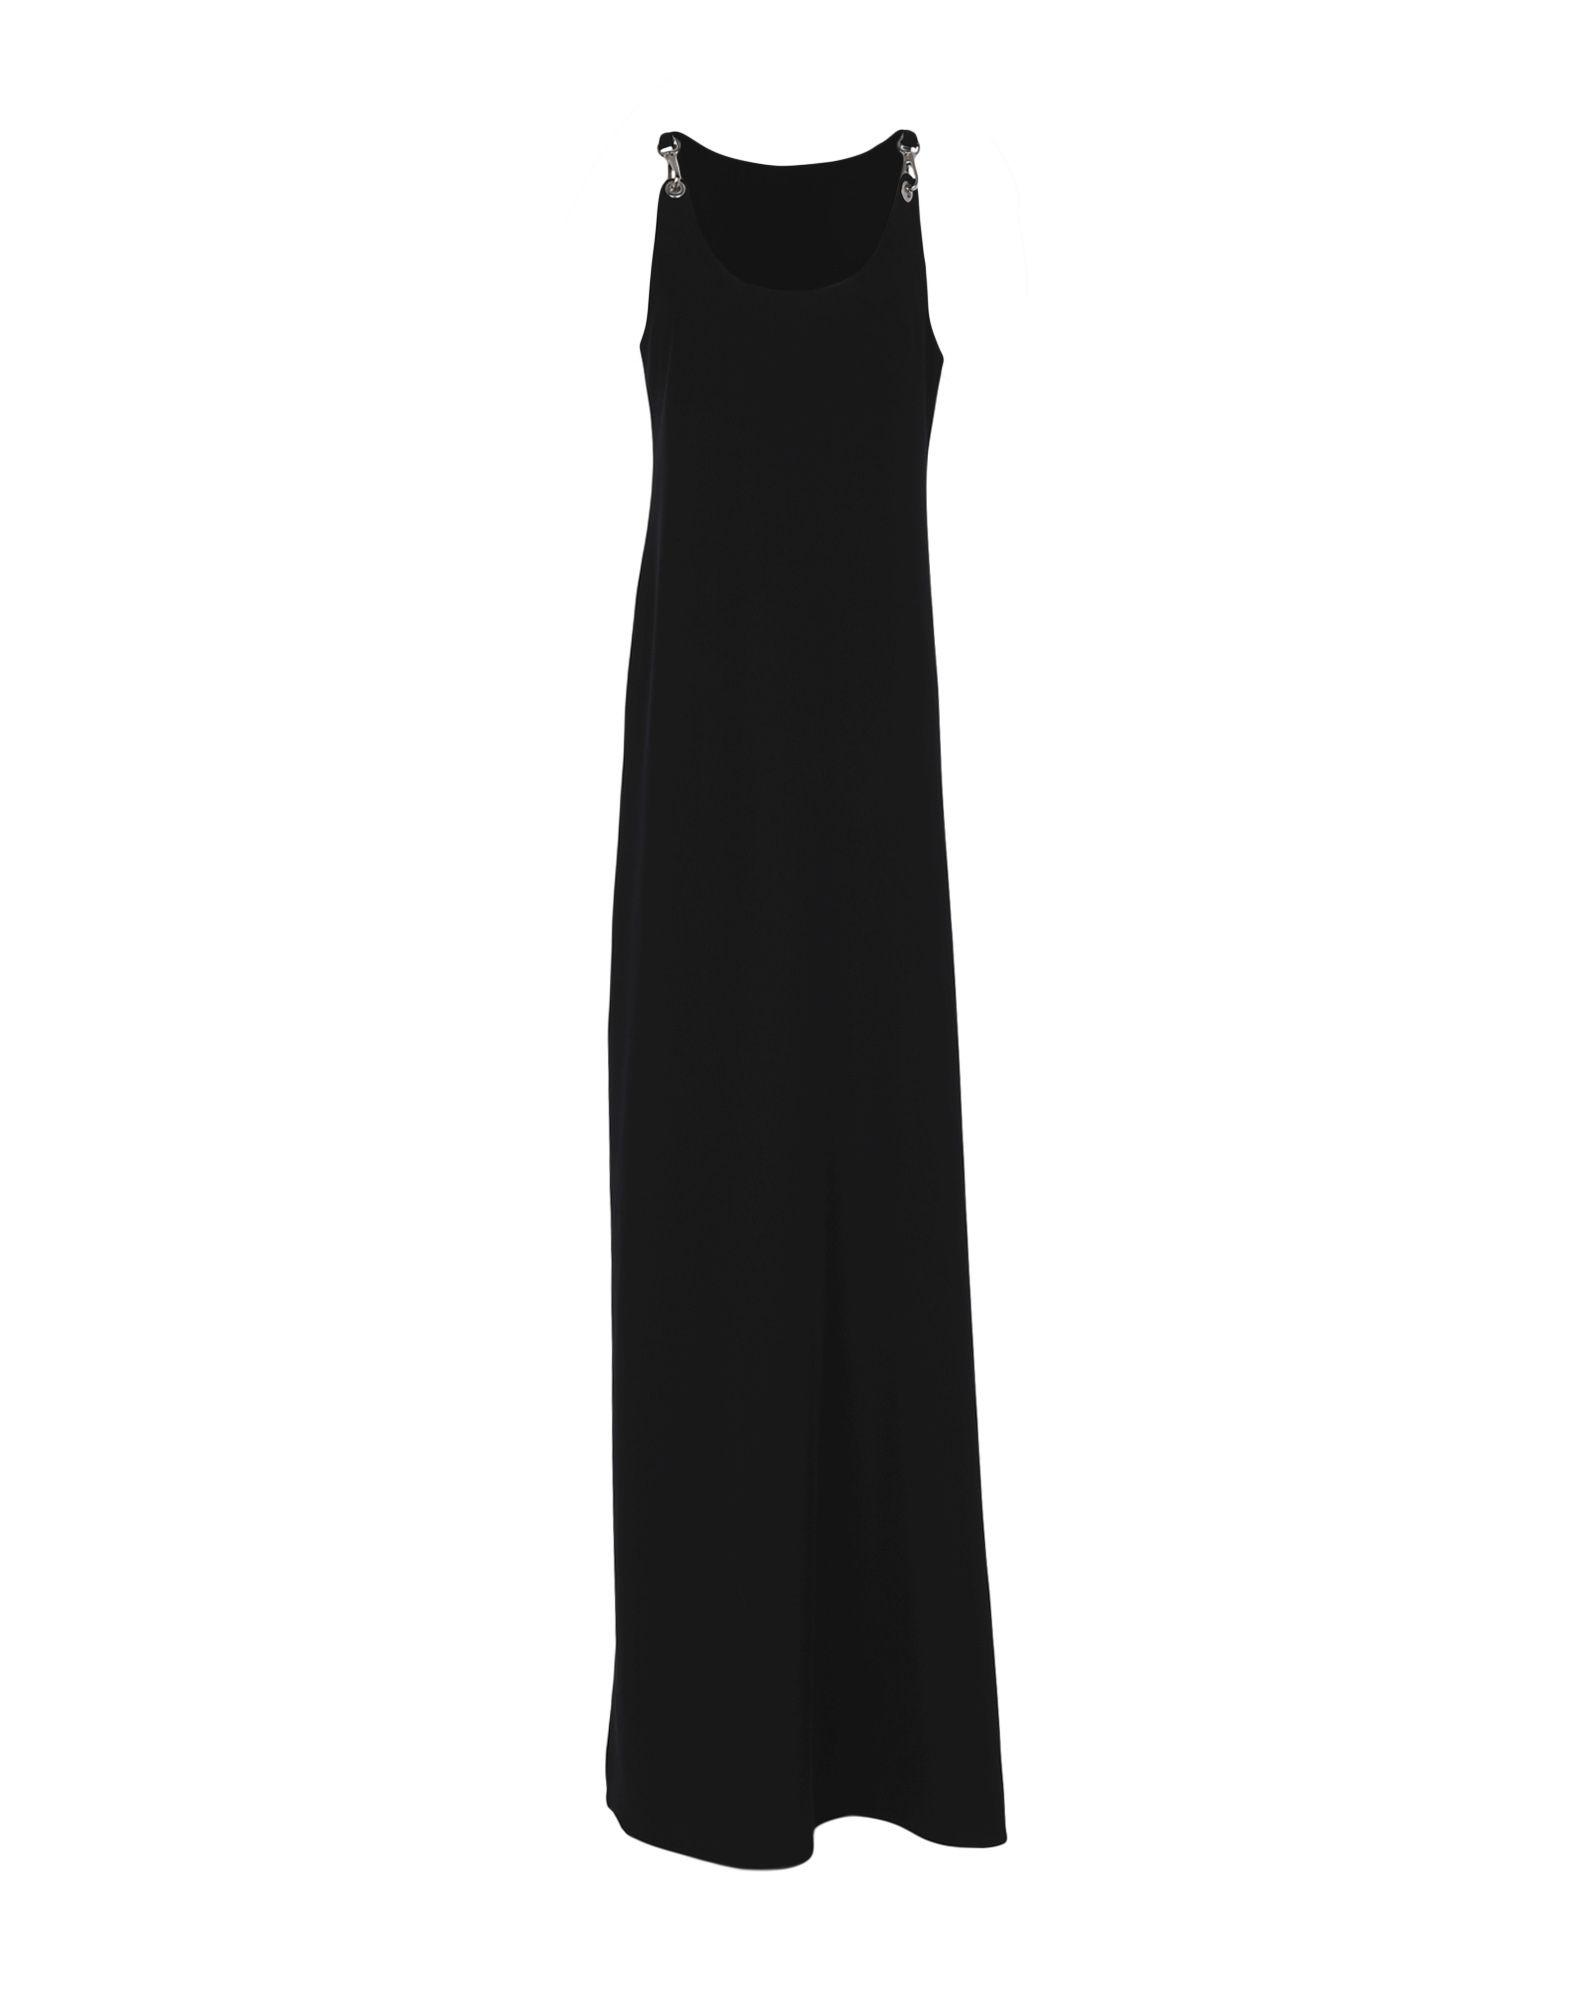 Paco Rabanne Evening Dress In Black